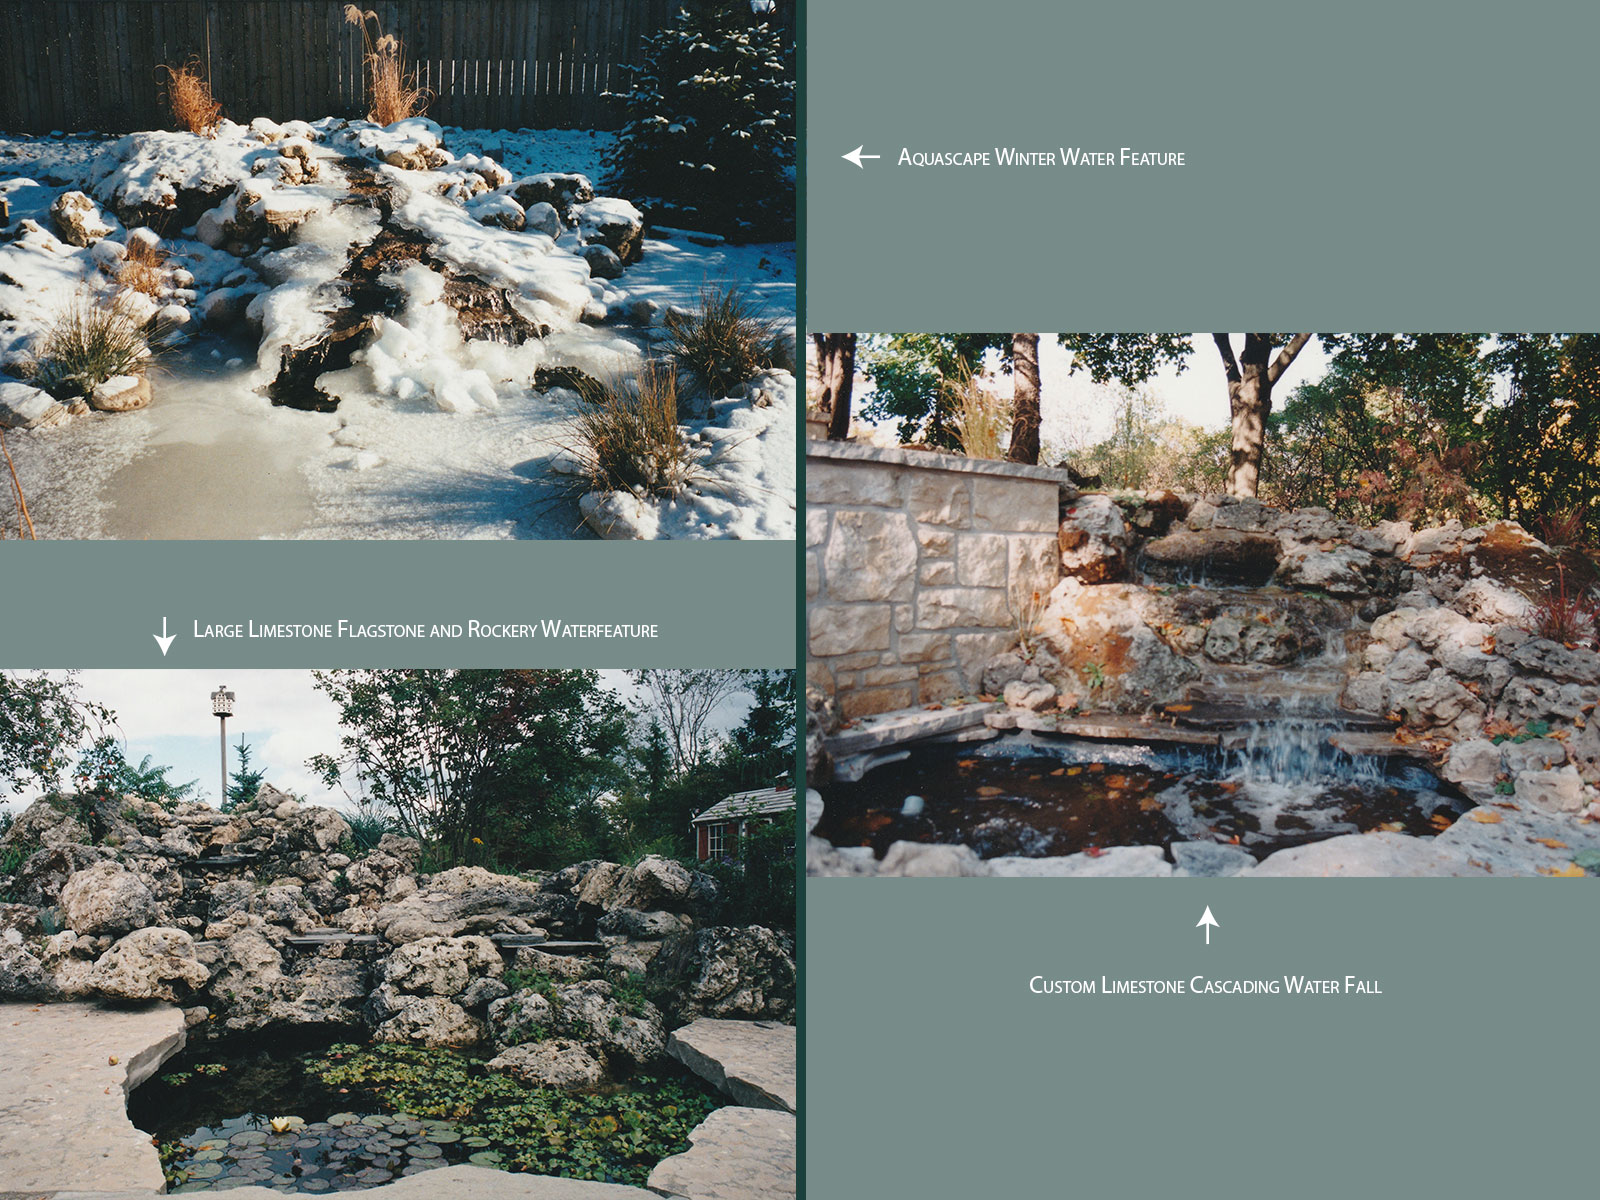 Aquascape and custom Limestone Water Features